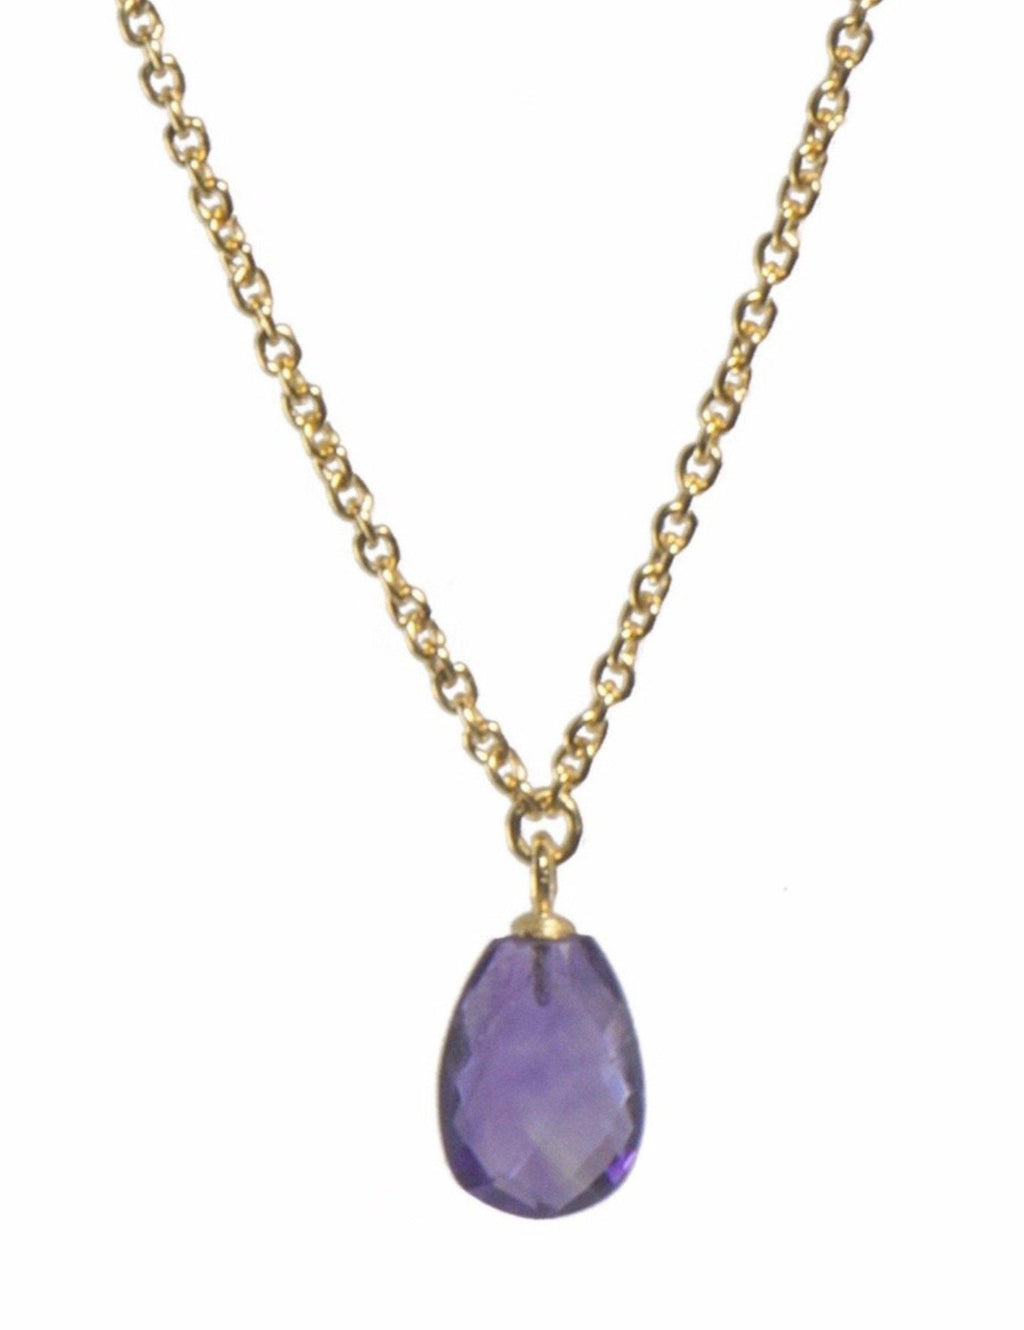 CH1601-040 NECKLACE- 17'' FACETED AMETHYST PENDANT FAIR TRADE 24K GOLD VERMEIL